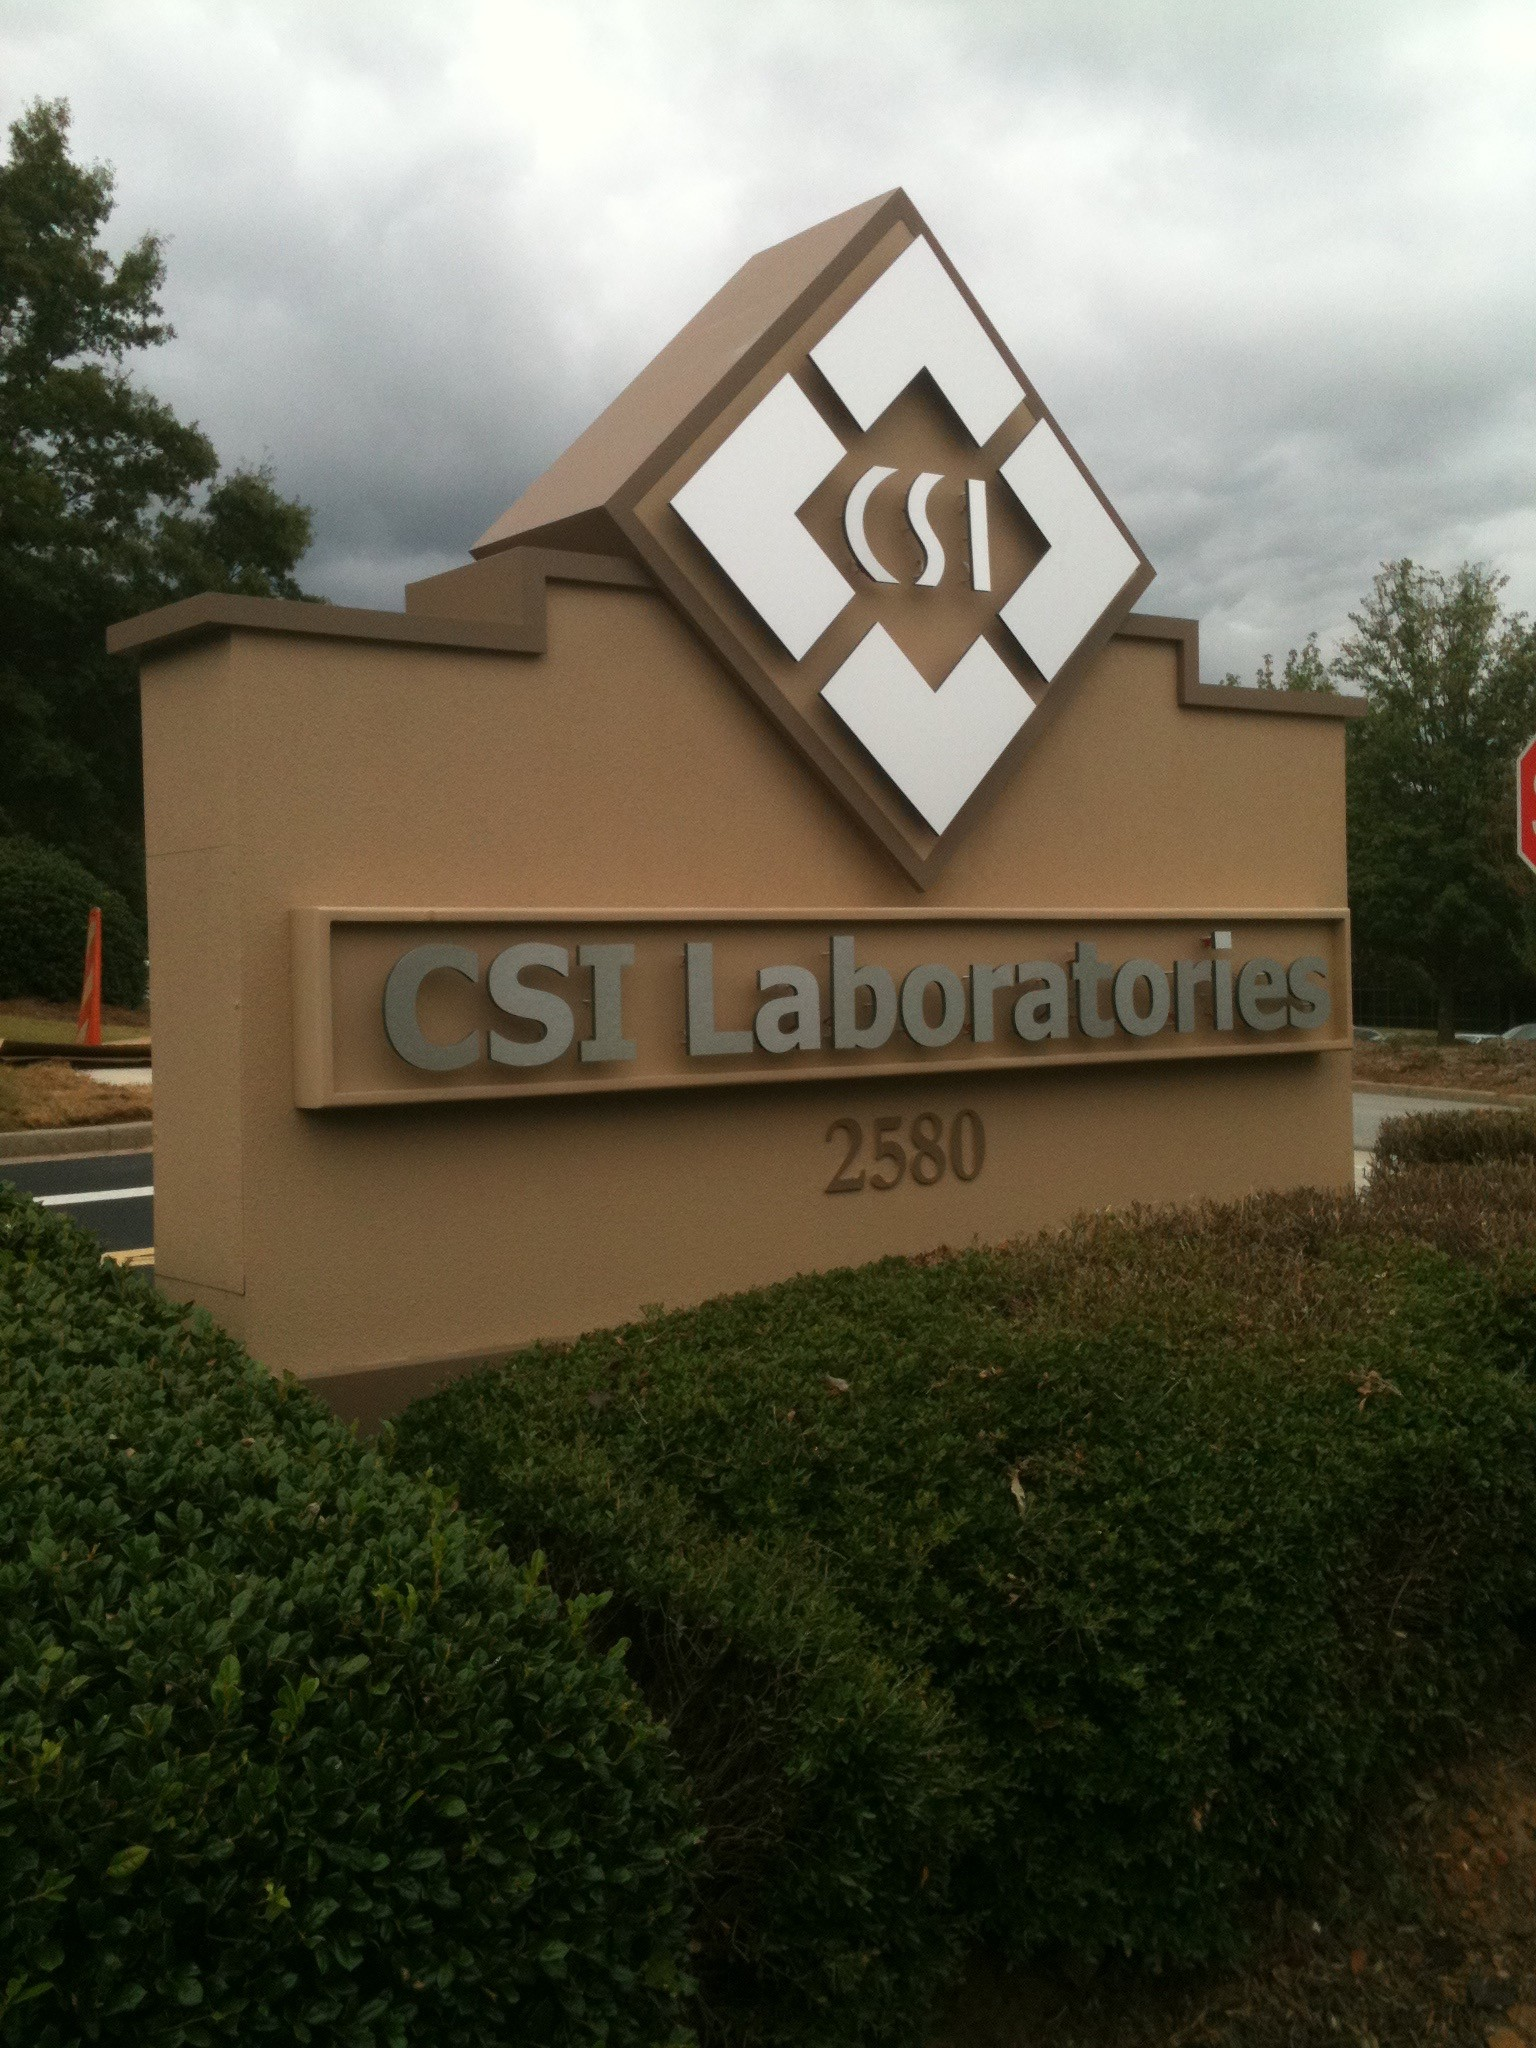 Commercial Business Sign with LED Strand Lights - Day Time View